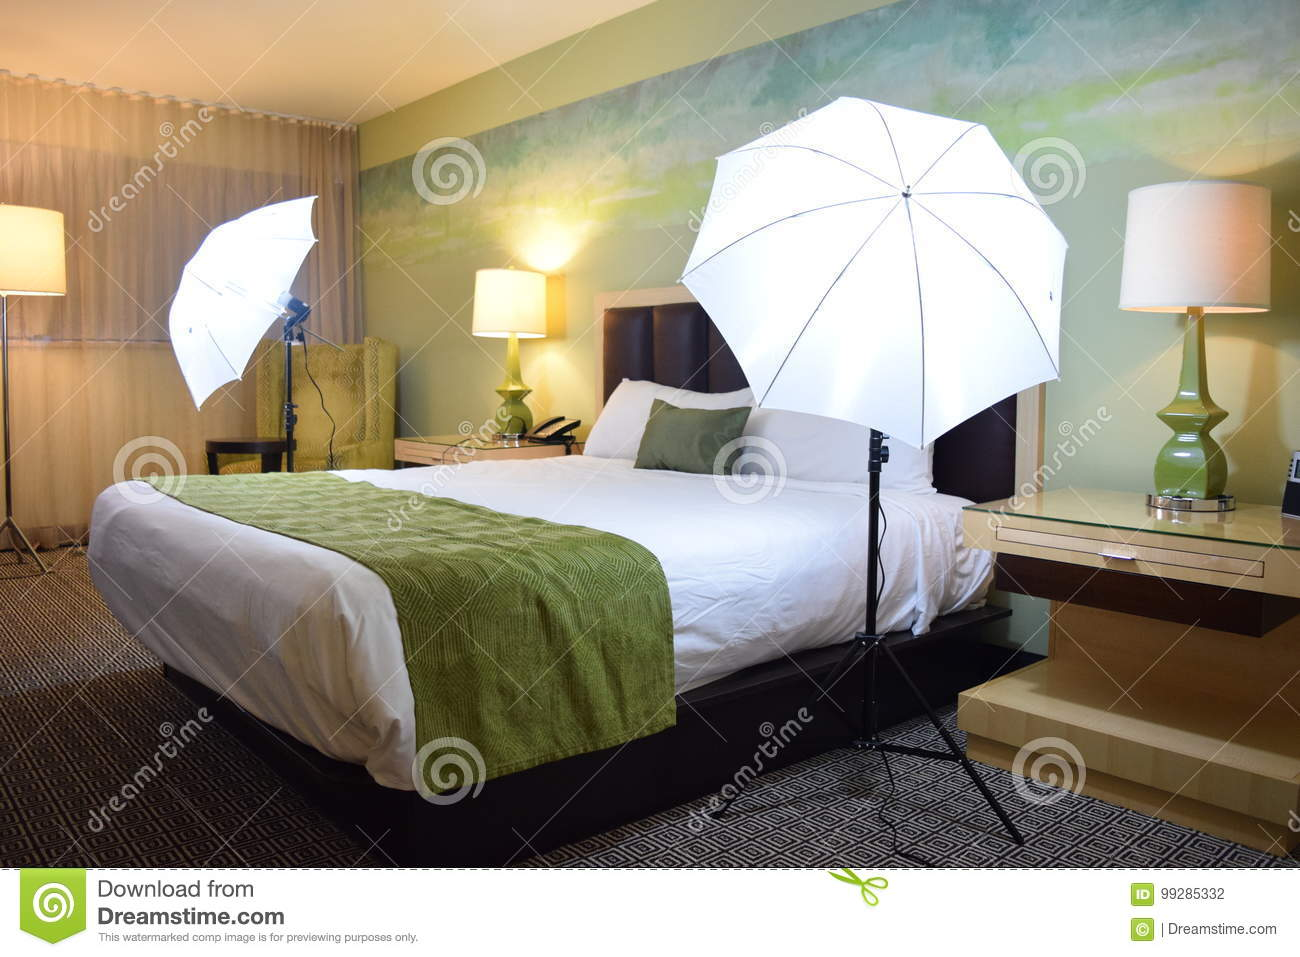 174 Hotel Photoshoot Photos Free Royalty Free Stock Photos From Dreamstime